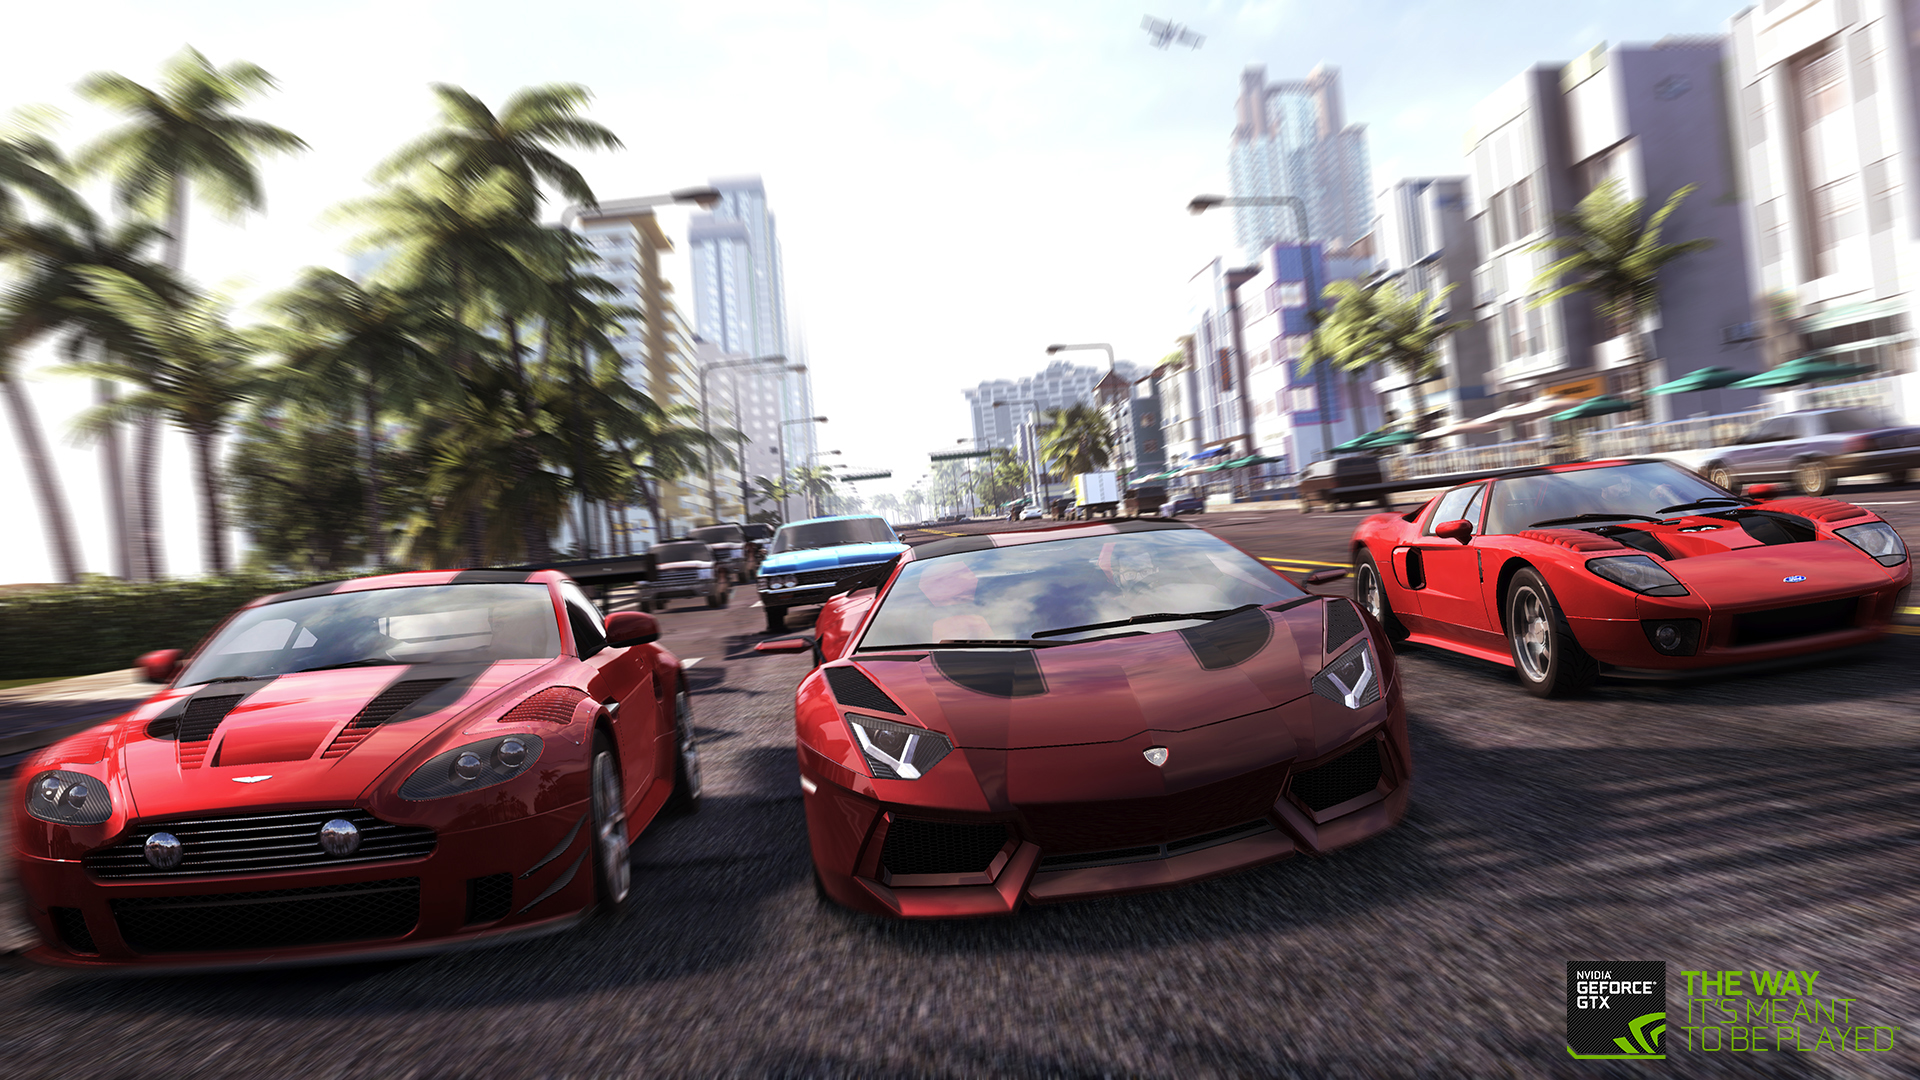 gta 5 live wallpaper free download